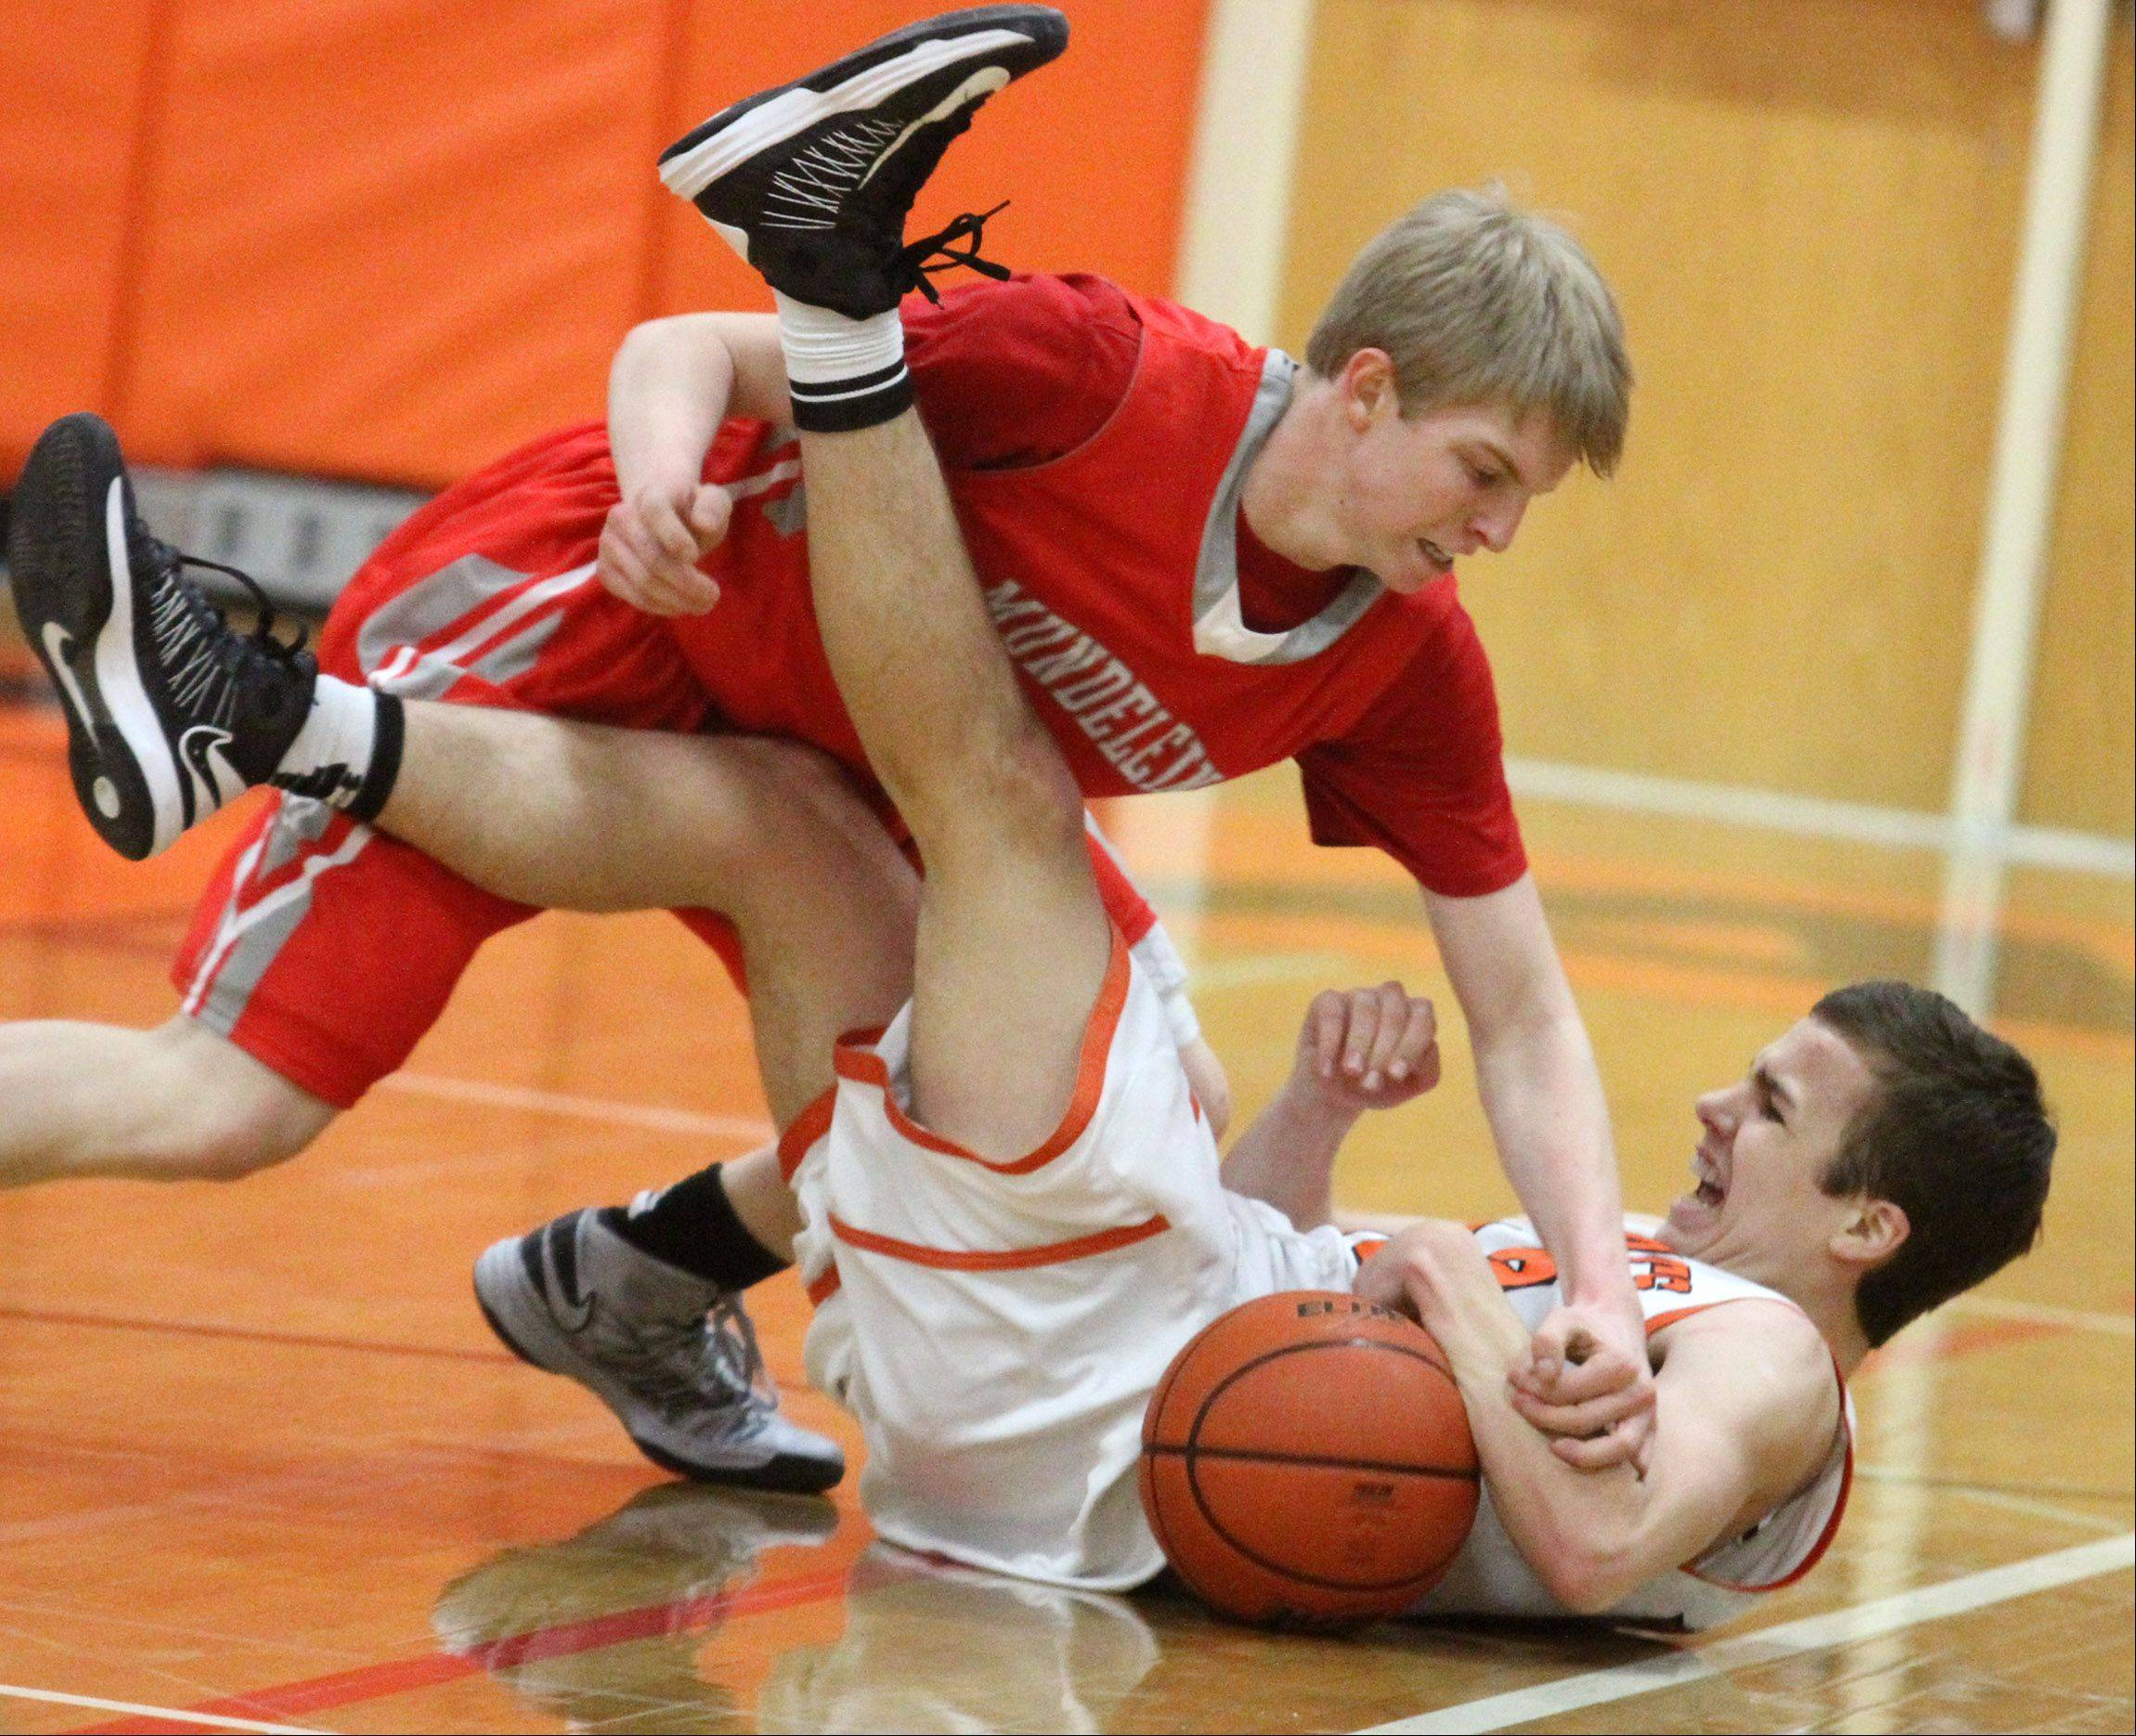 Mundelein's Dylan Delaquila tries to take the ball from Libertyville's Nick Carlucci after the two collided during Friday's game in Libertyville.